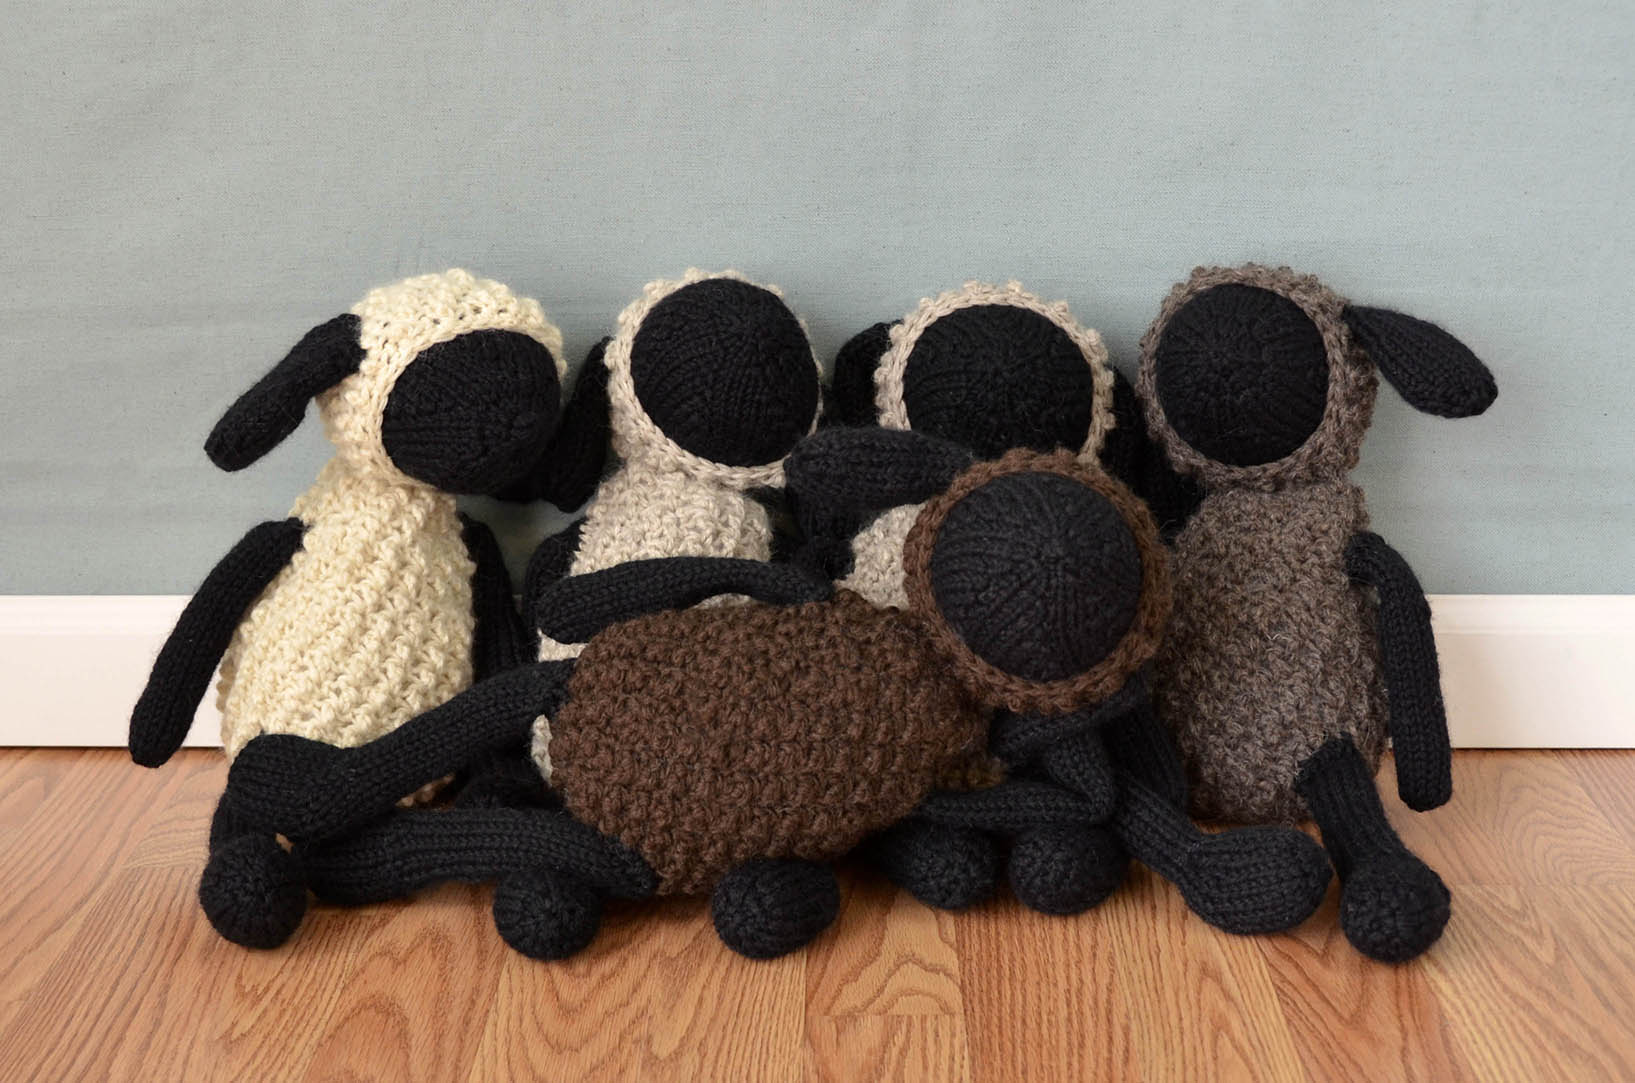 Free pattern friday sheldon sheep friends universal yarn sheep group shot posedblog bankloansurffo Gallery